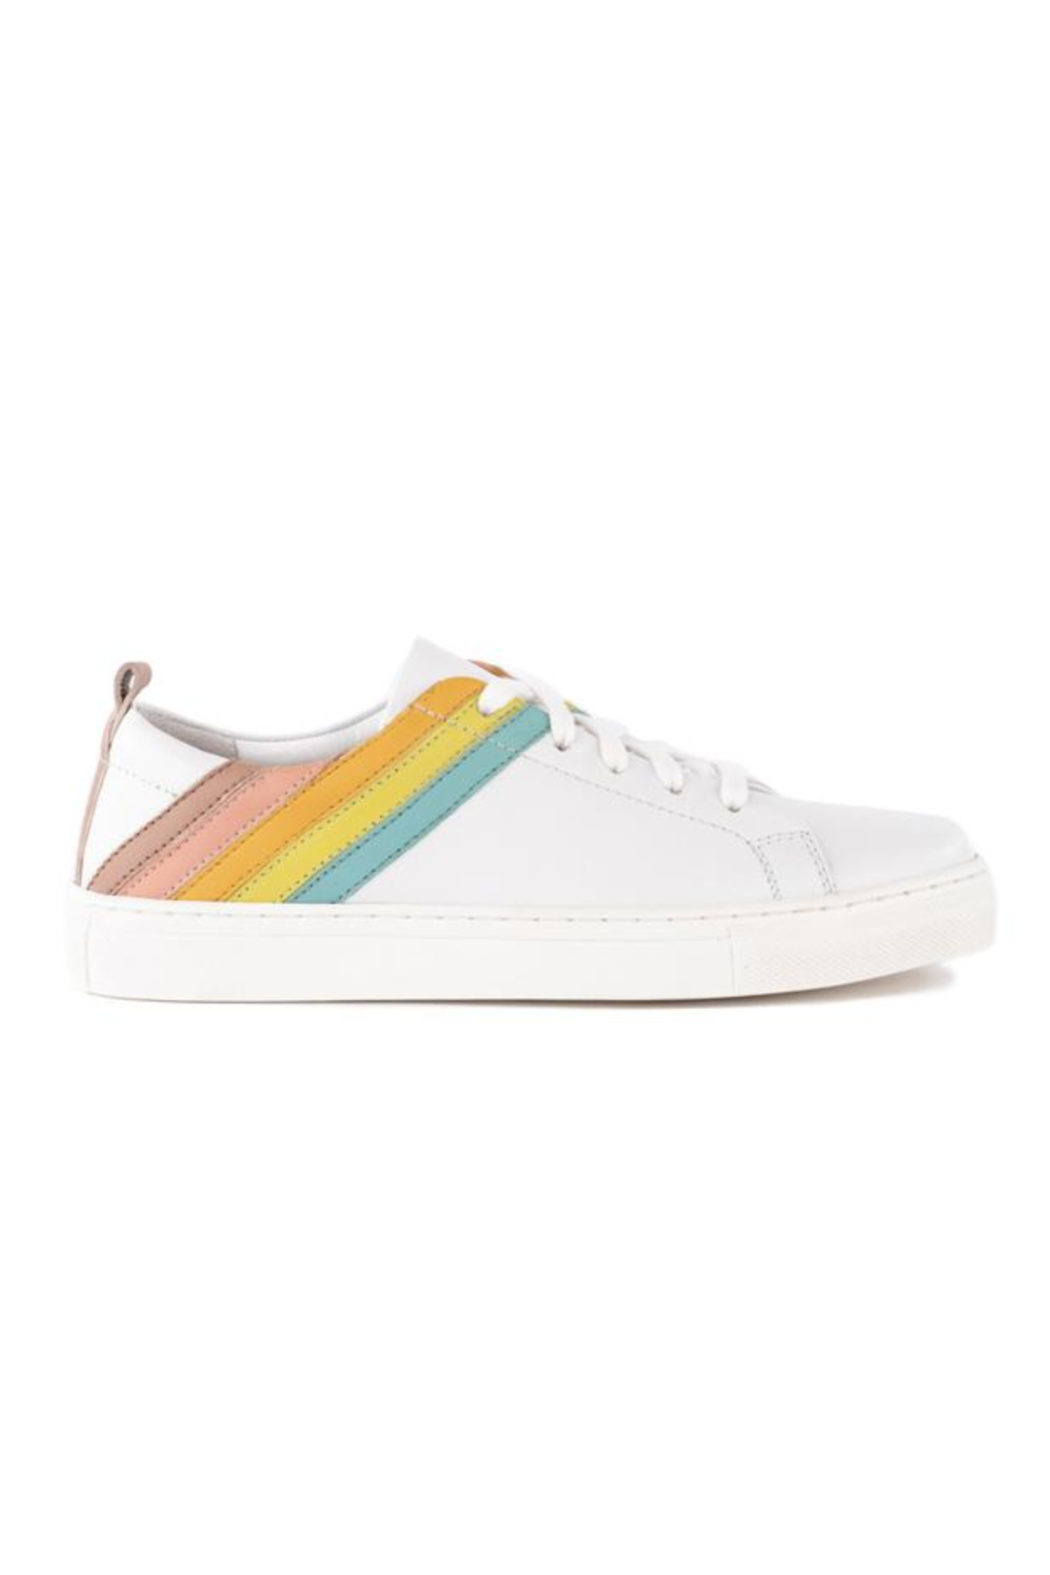 Seychelles Stand Out Leather Rainbow Sneaker - Front Full Image